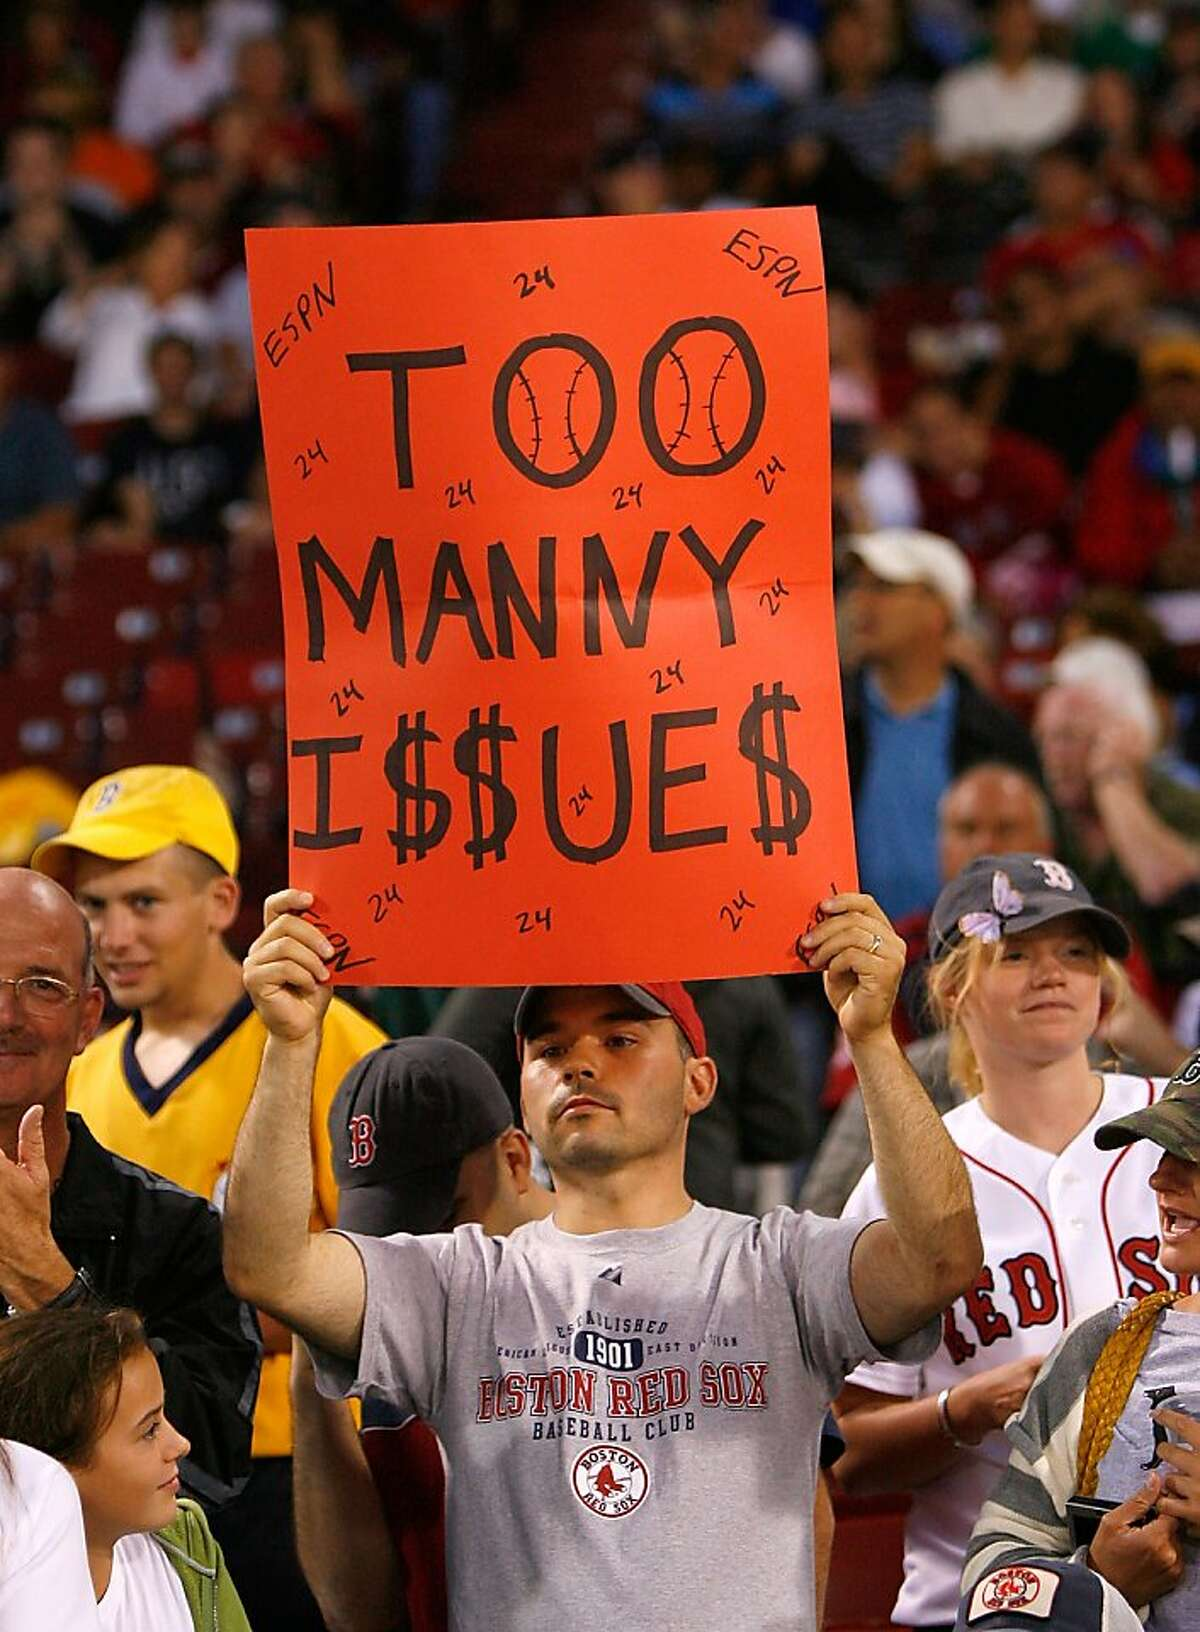 BOSTON - JULY 27: A fan show his displeasure with Manny Ramirez before a game between the New York Yankees and the Boston Red Sox at Fenway Park on July 27, 2008 in Boston, Massachusetts. (Photo by Jim Rogash/Getty Images)